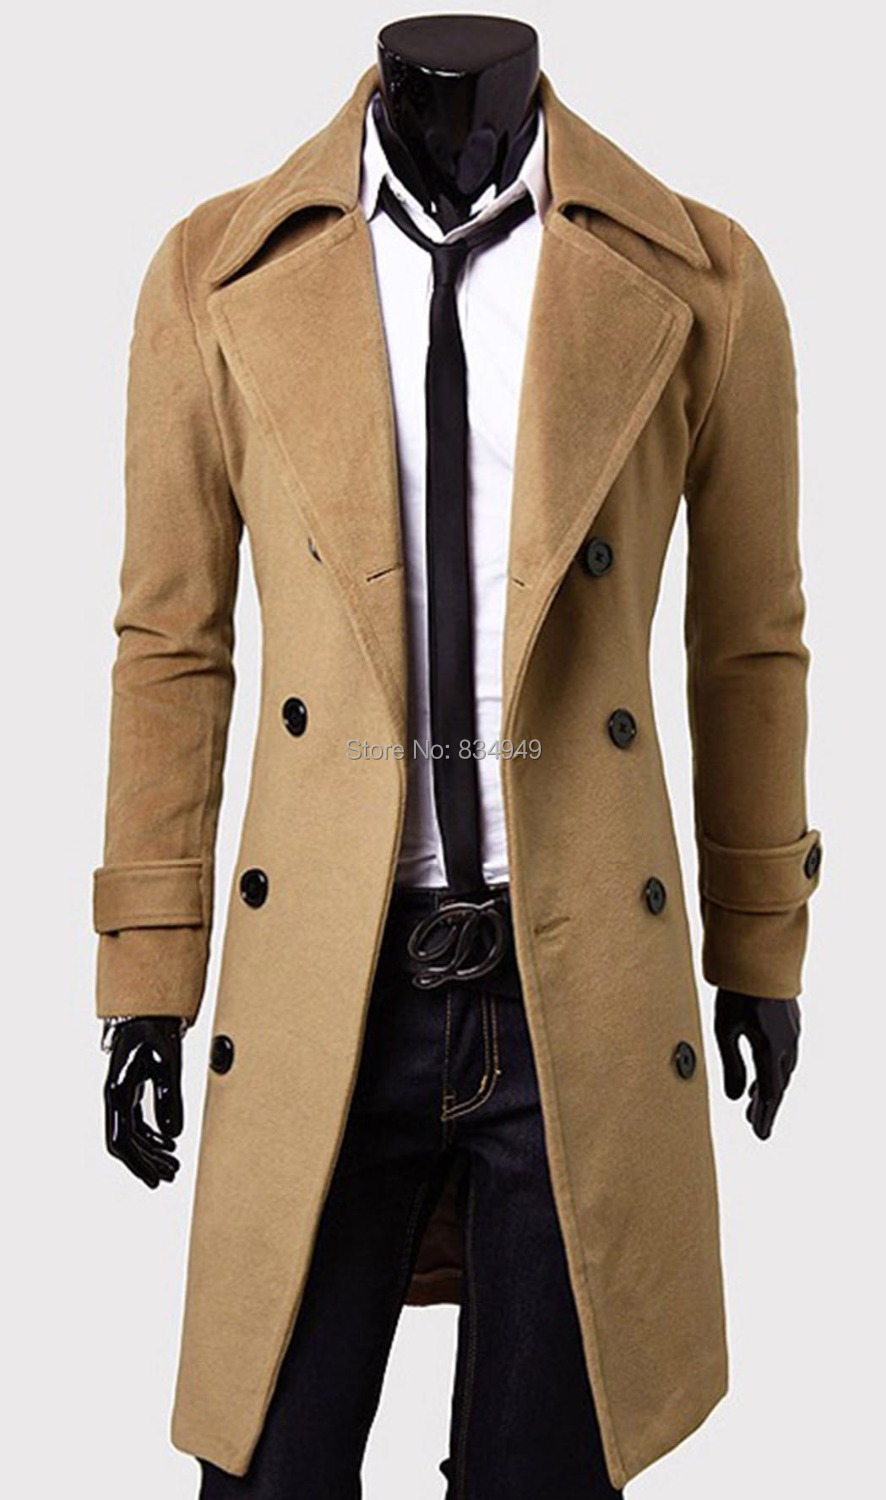 Long Brown Coats - Coat Racks